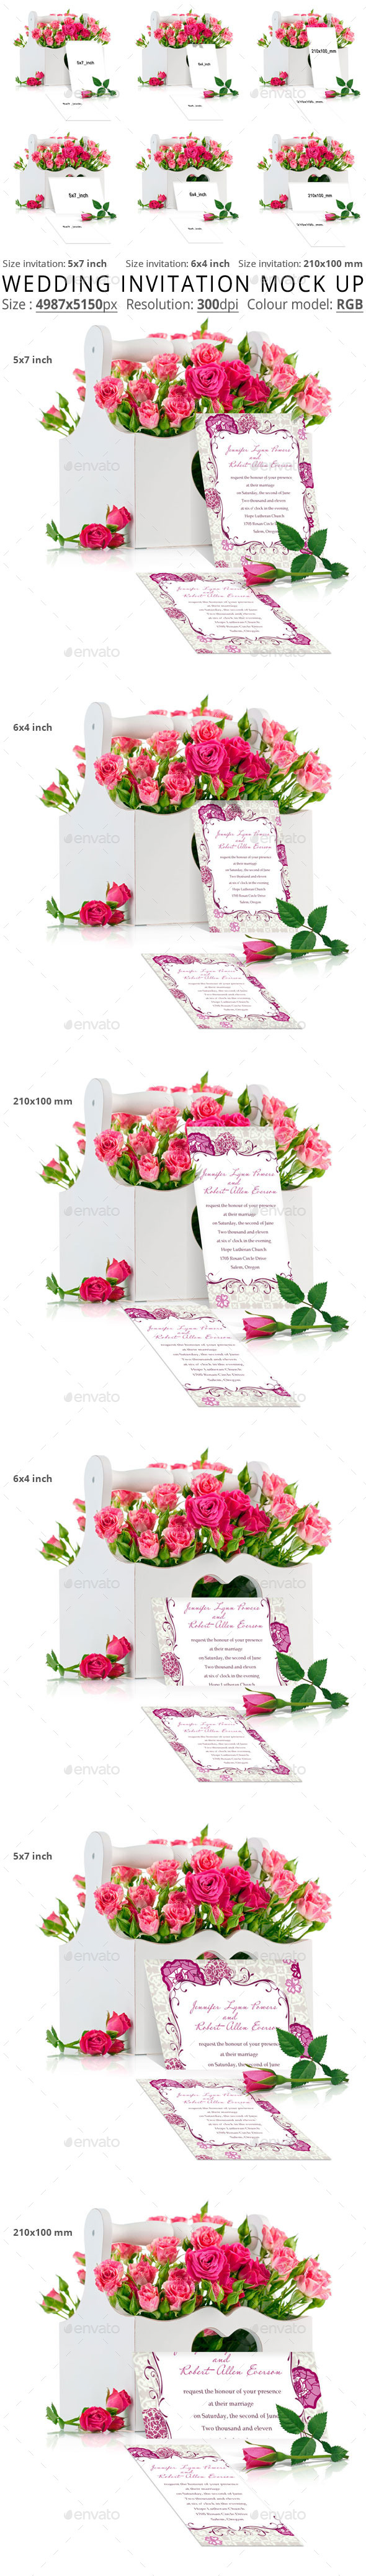 GraphicRiver Wedding Invitation Mock Up 11889776